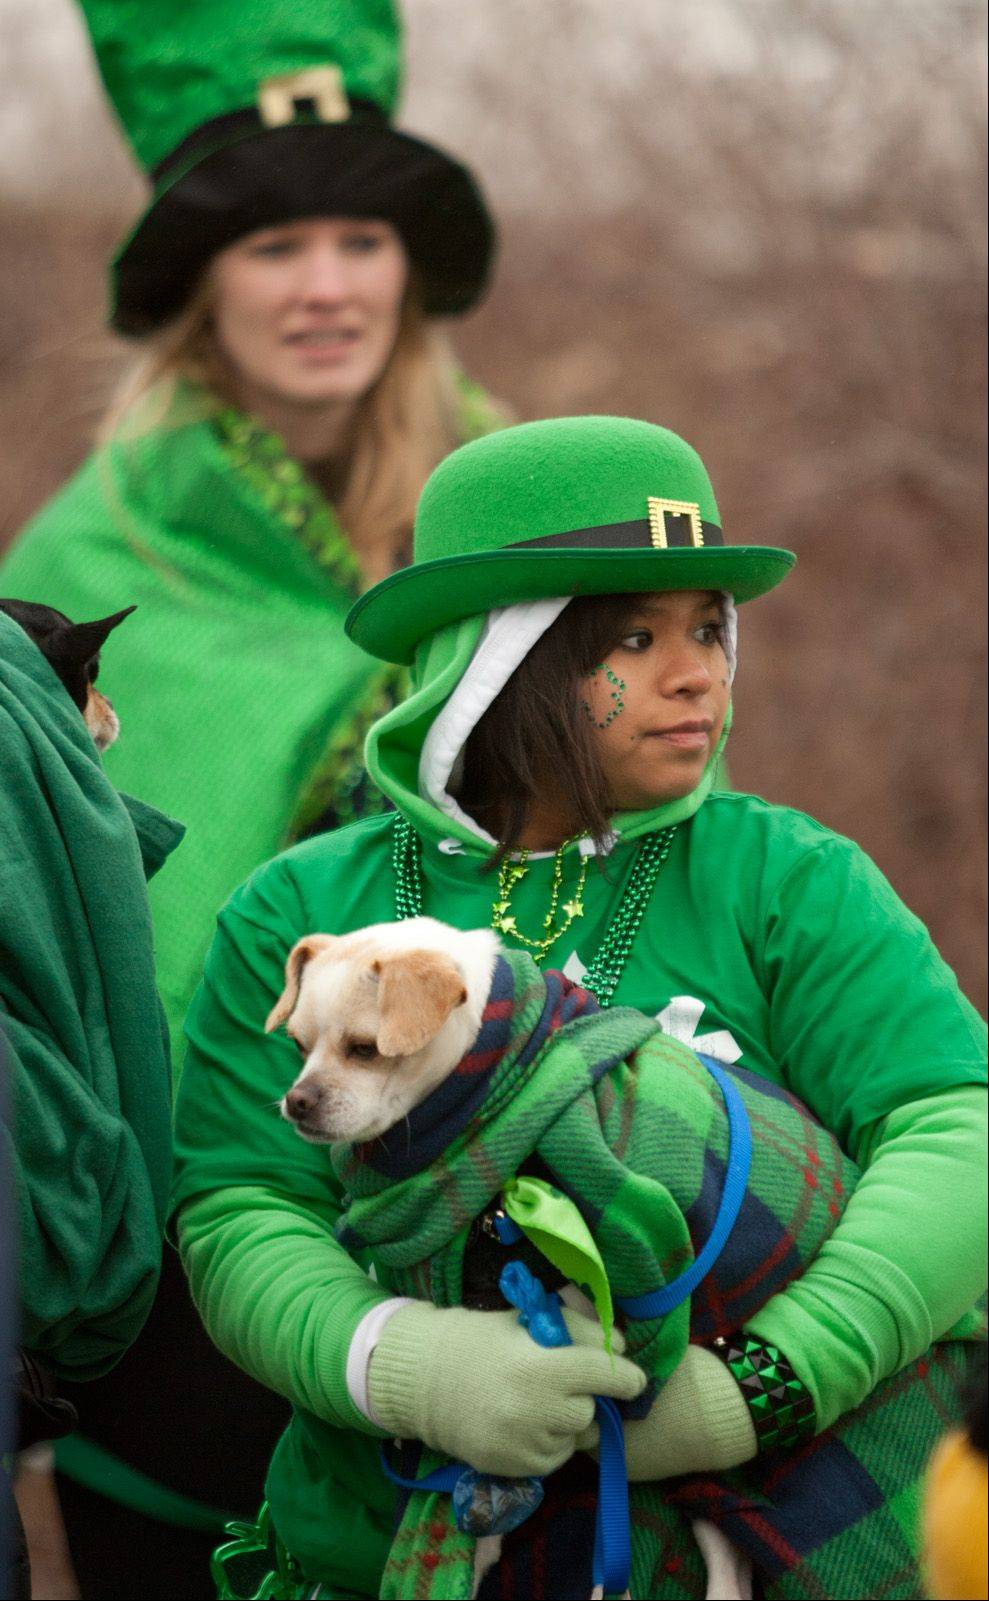 Irene Zaccarine of the Adopt-a-Pet Shelter in Naperville waits to step off Saturday morning in the Naperville's St. Patrick's Day Parade.